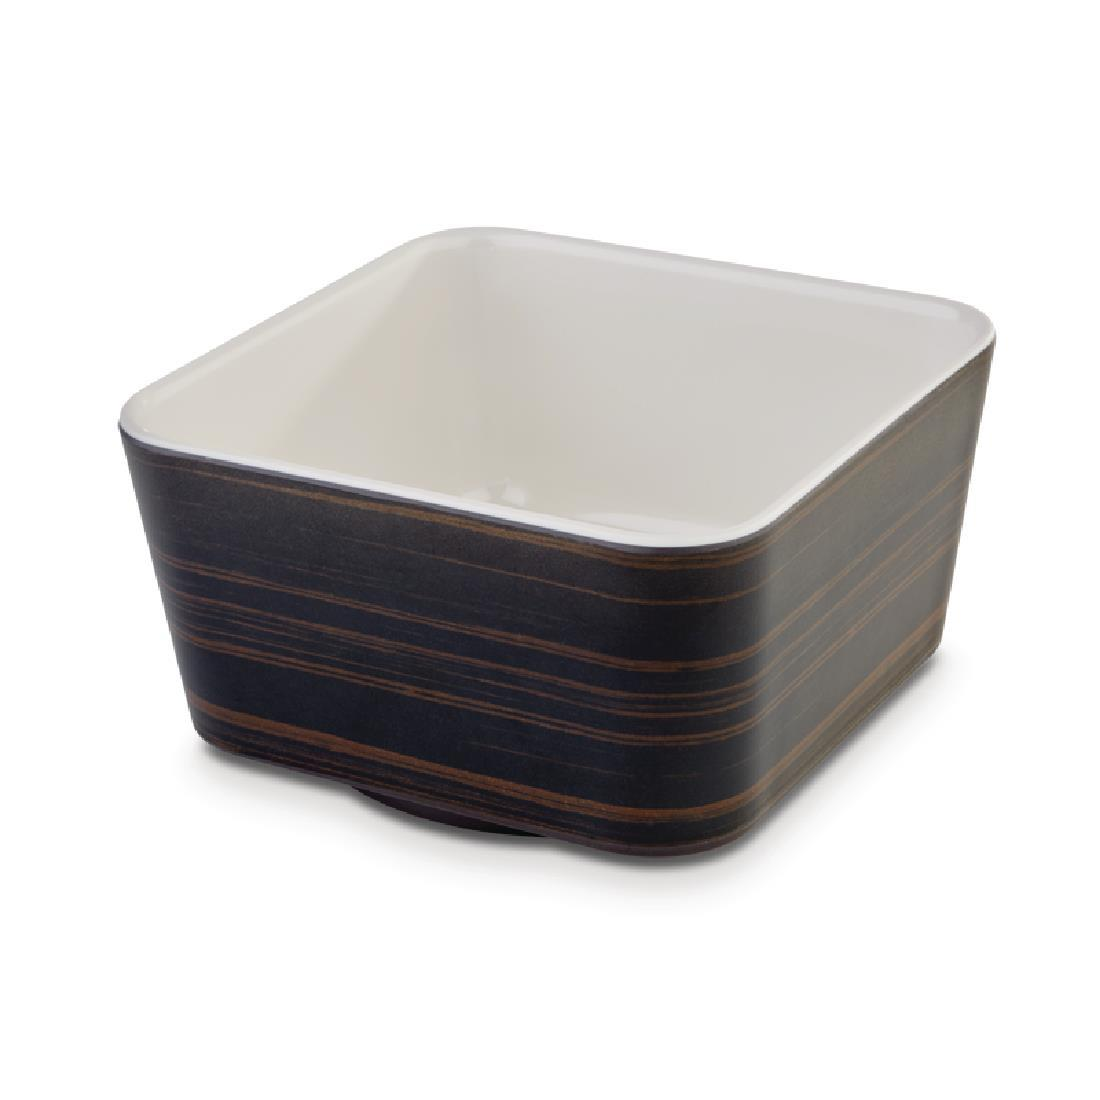 DE569 - APS+ Melamine Square Bowl Oak and Cream 700ml - Each - DE569